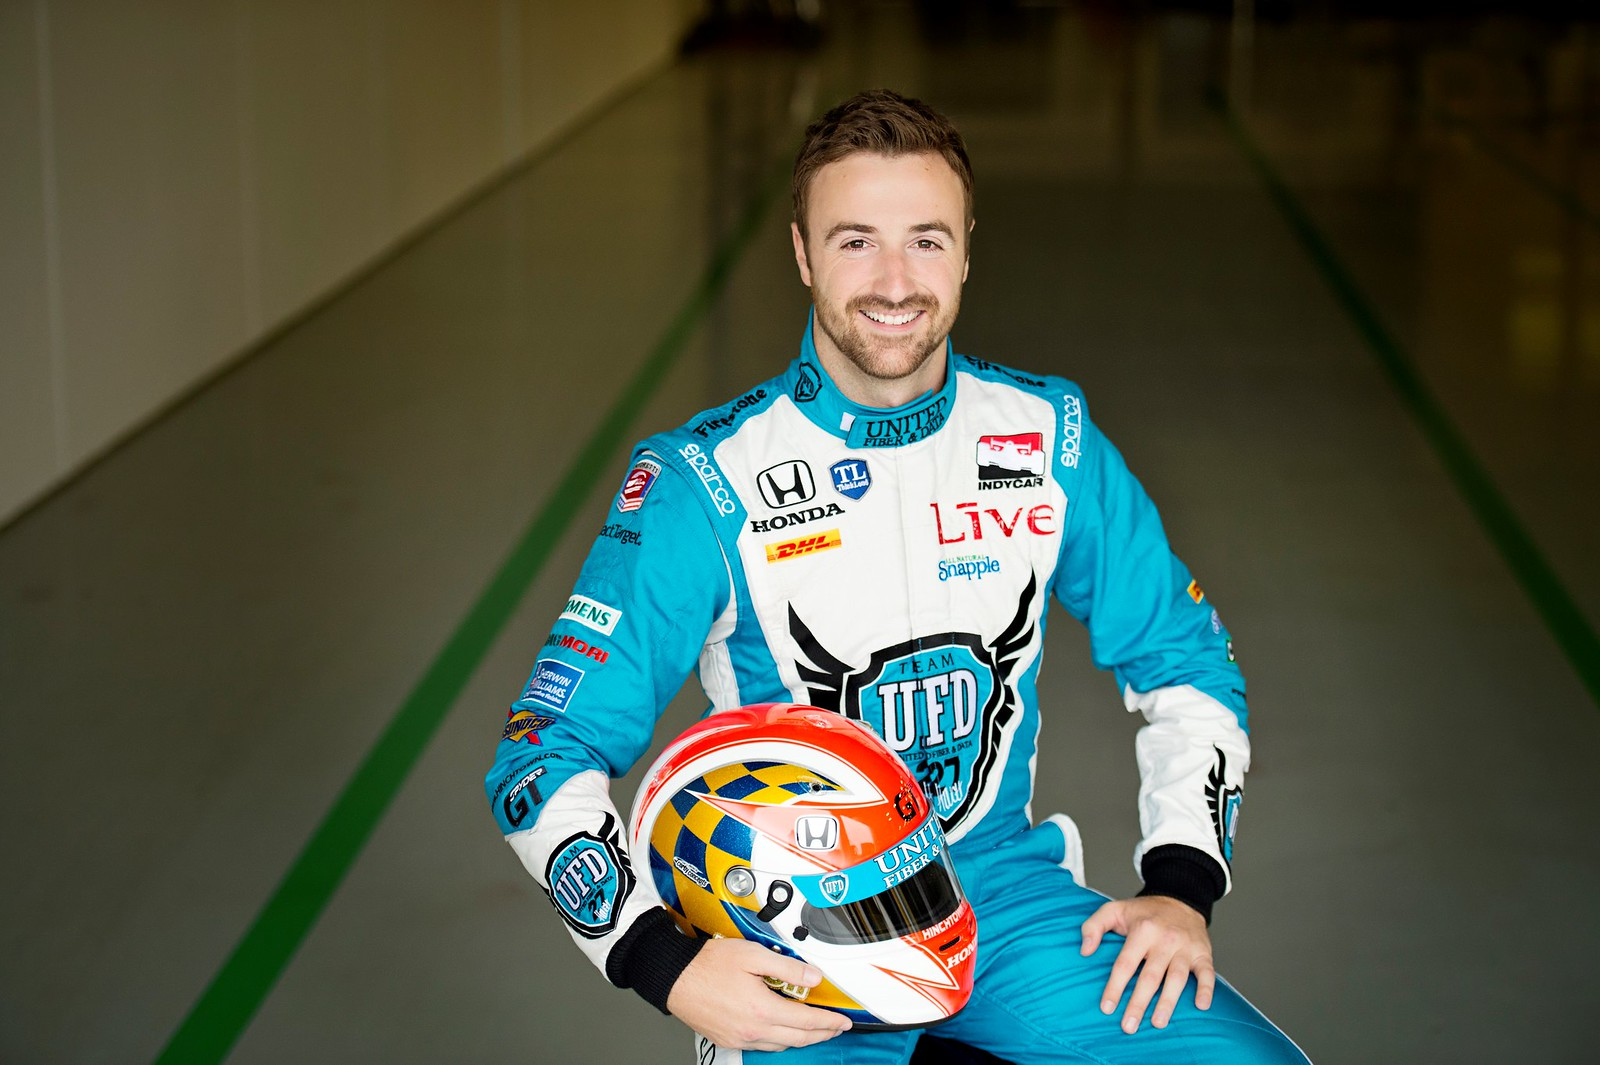 14541984594 0a2528c02d h Interview with IndyCar driver James Hinchcliffe